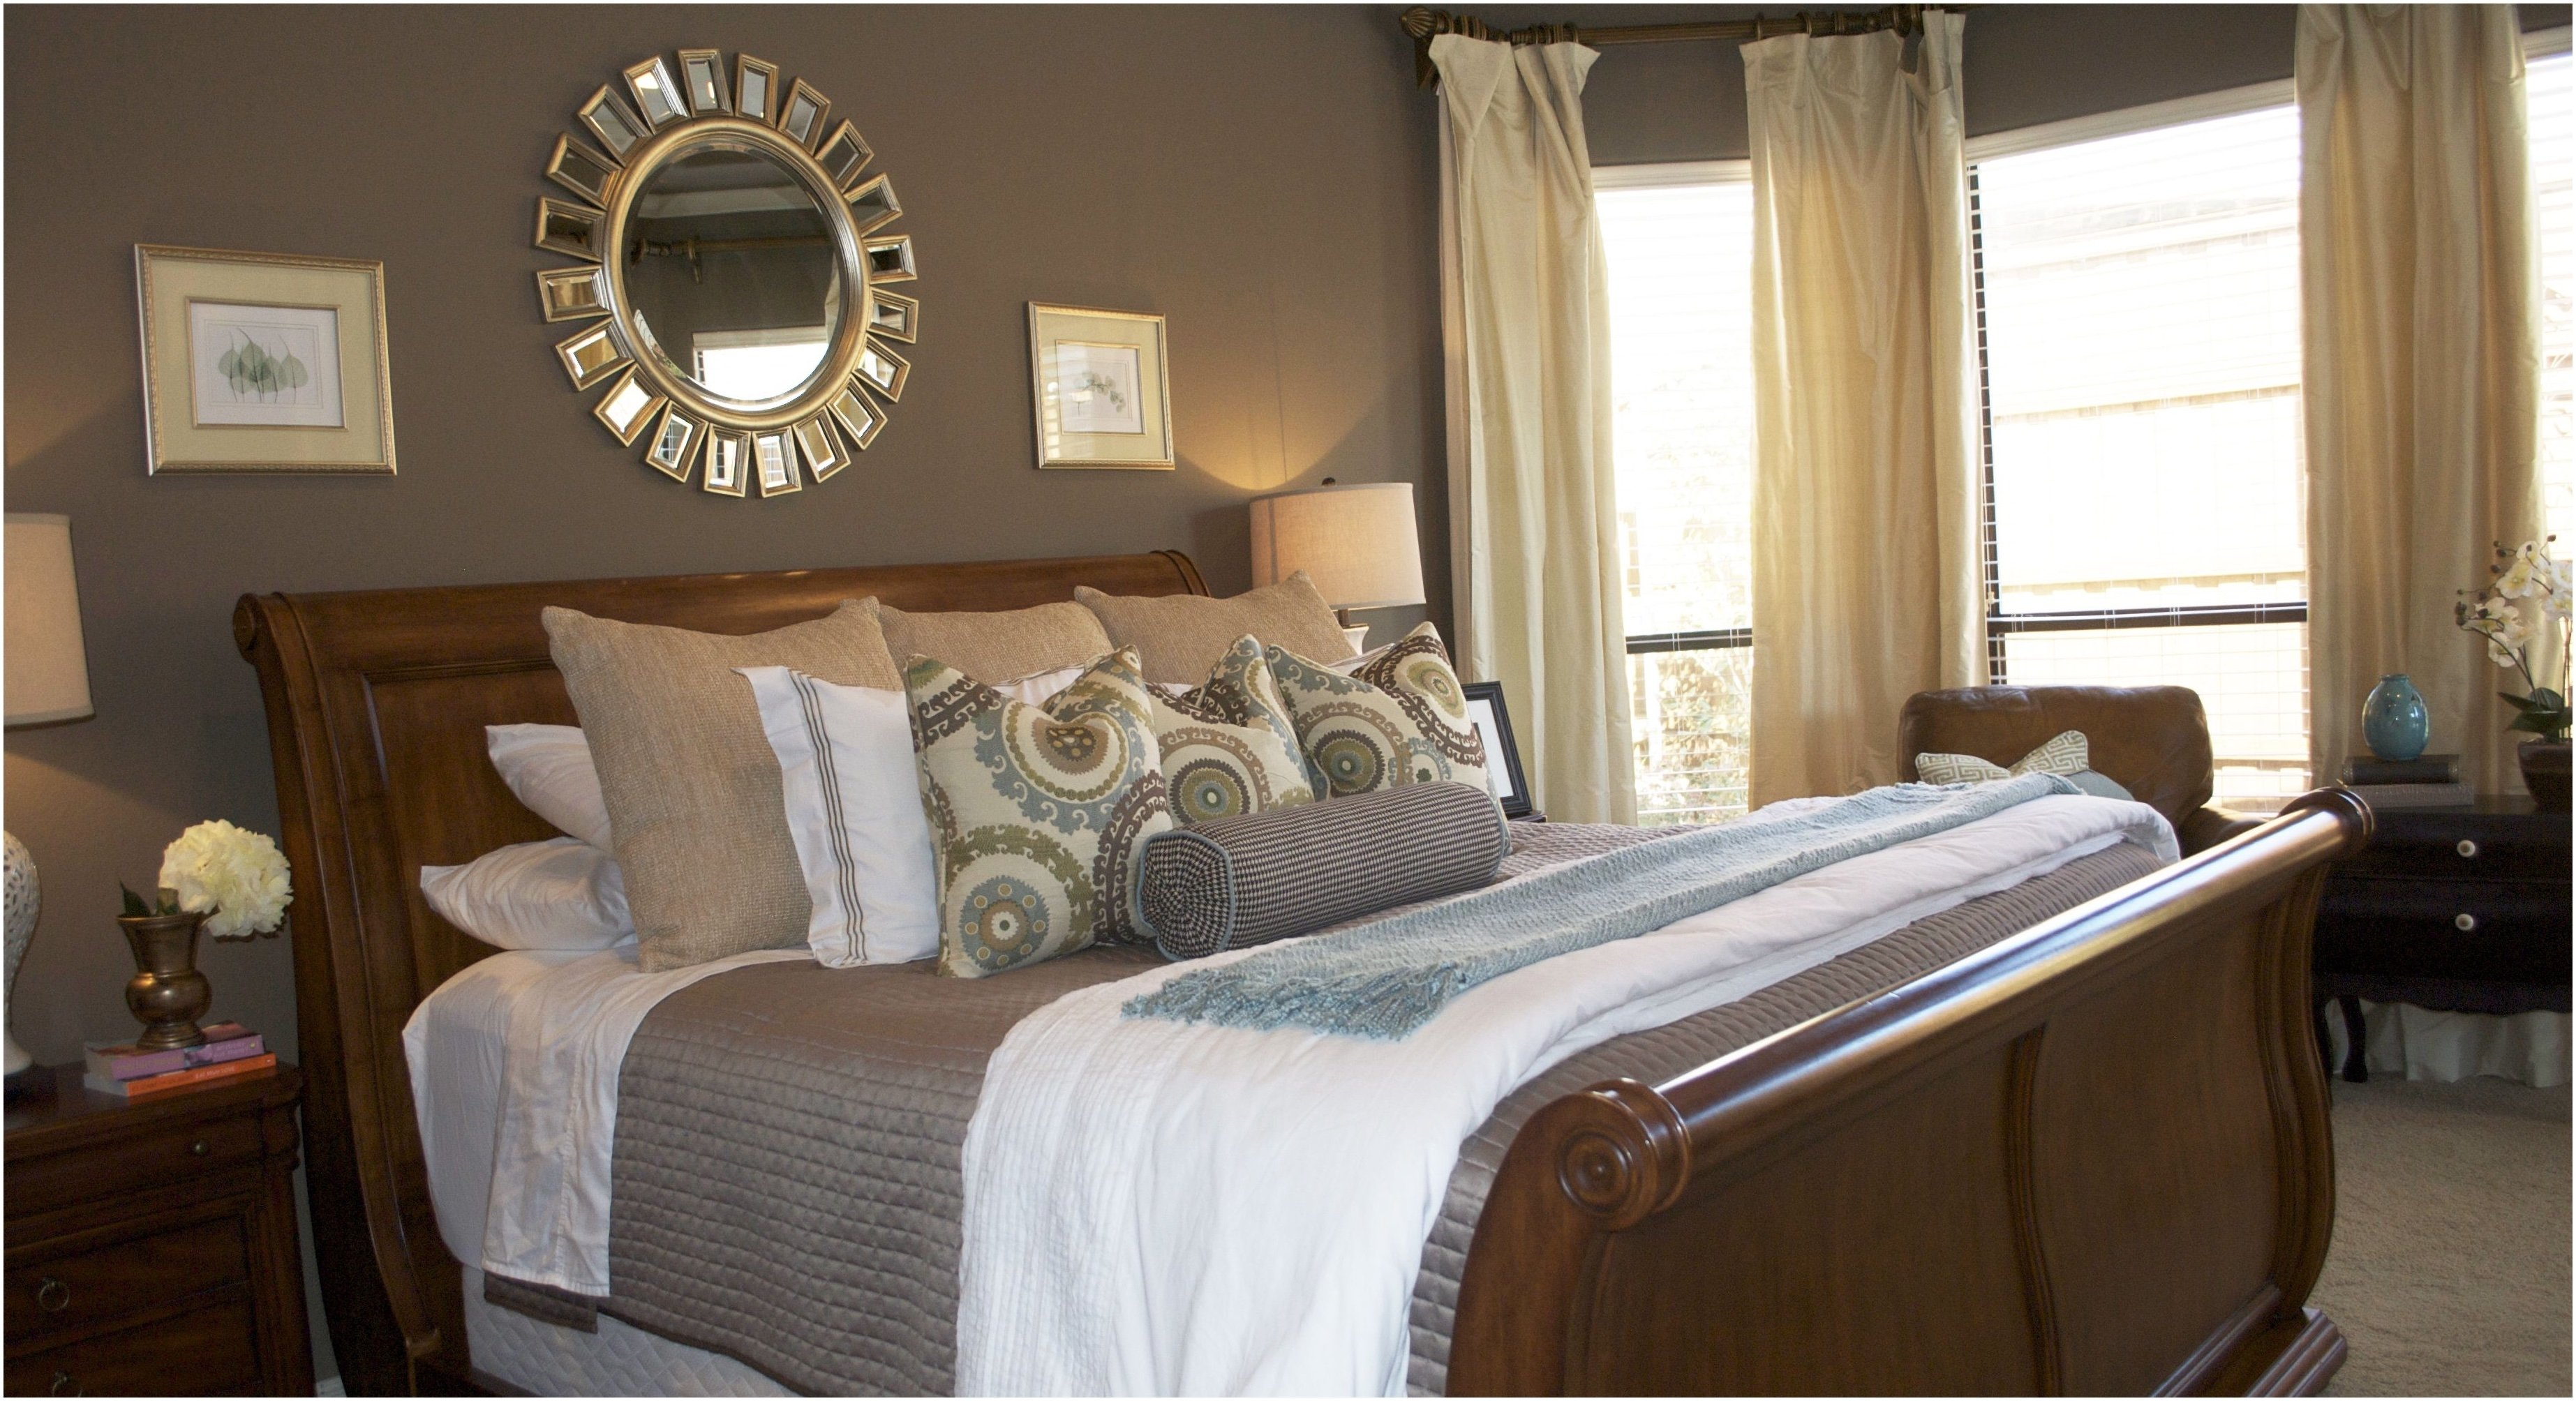 10 Beautiful Master Bedroom Ideas On A Budget bedroom lovely chandelier small master bedroom ideas on a budget 1 2020